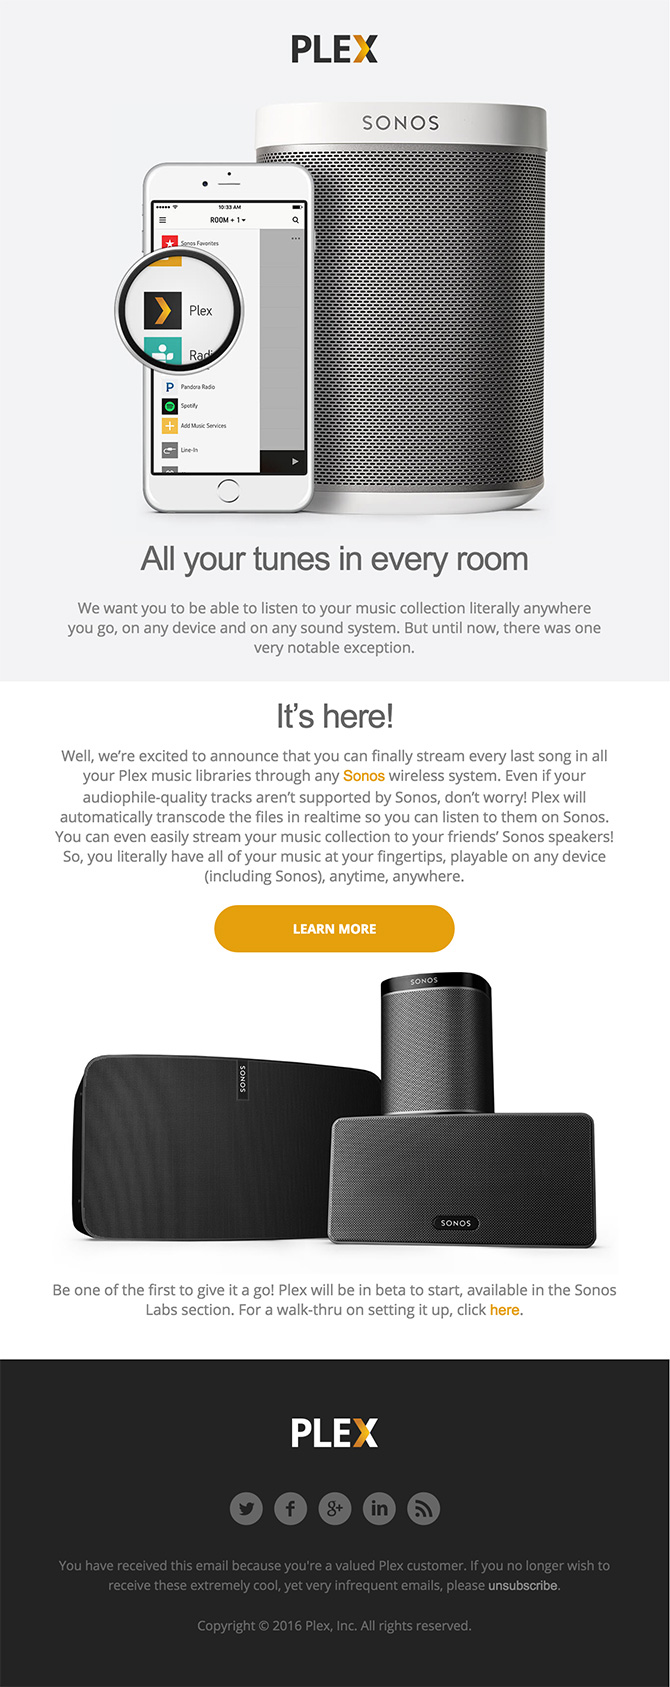 html email design Flex plus Sonos